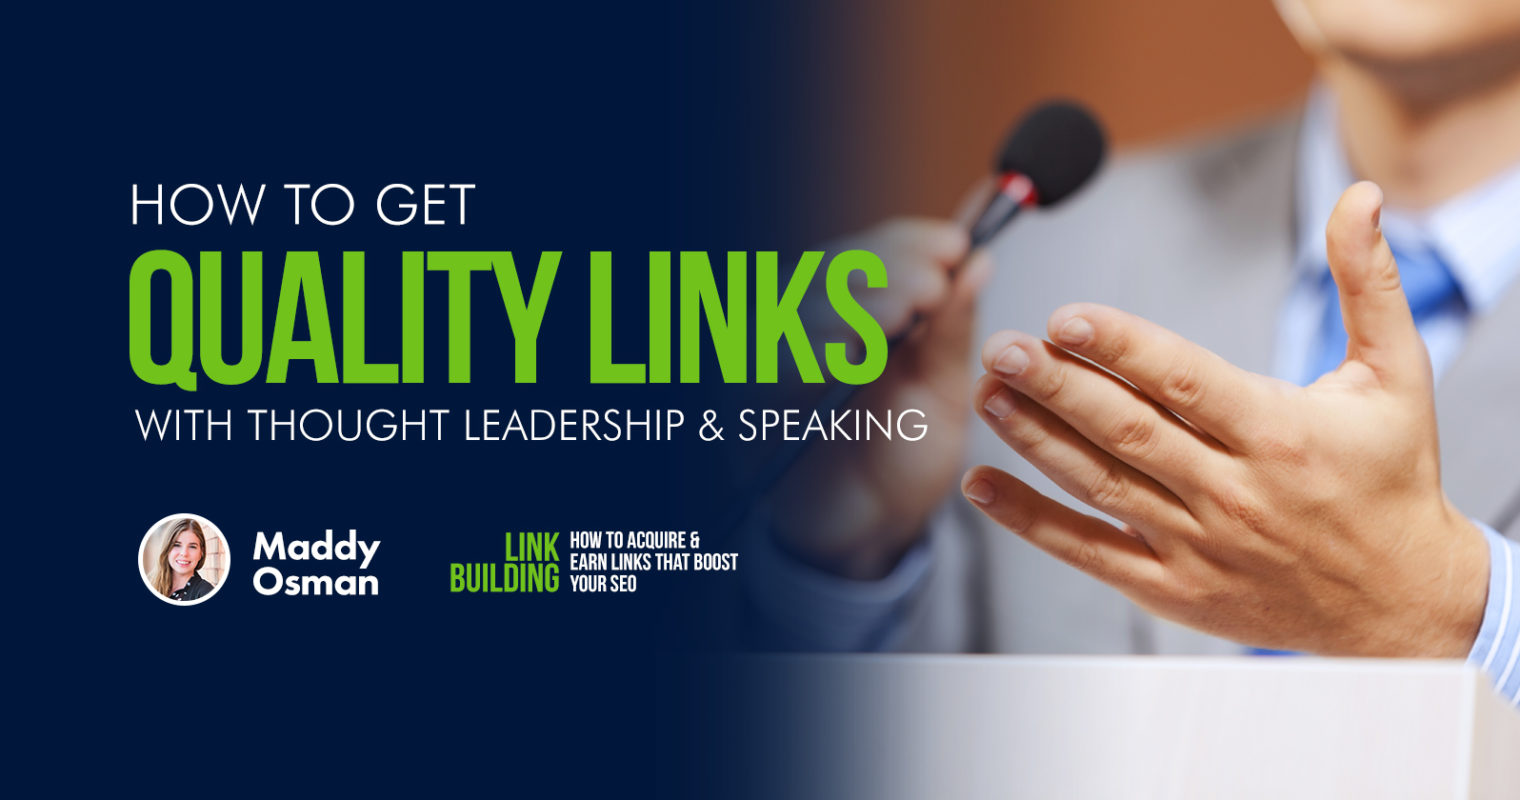 How to Get Quality Links with Thought Leadership & Speaking